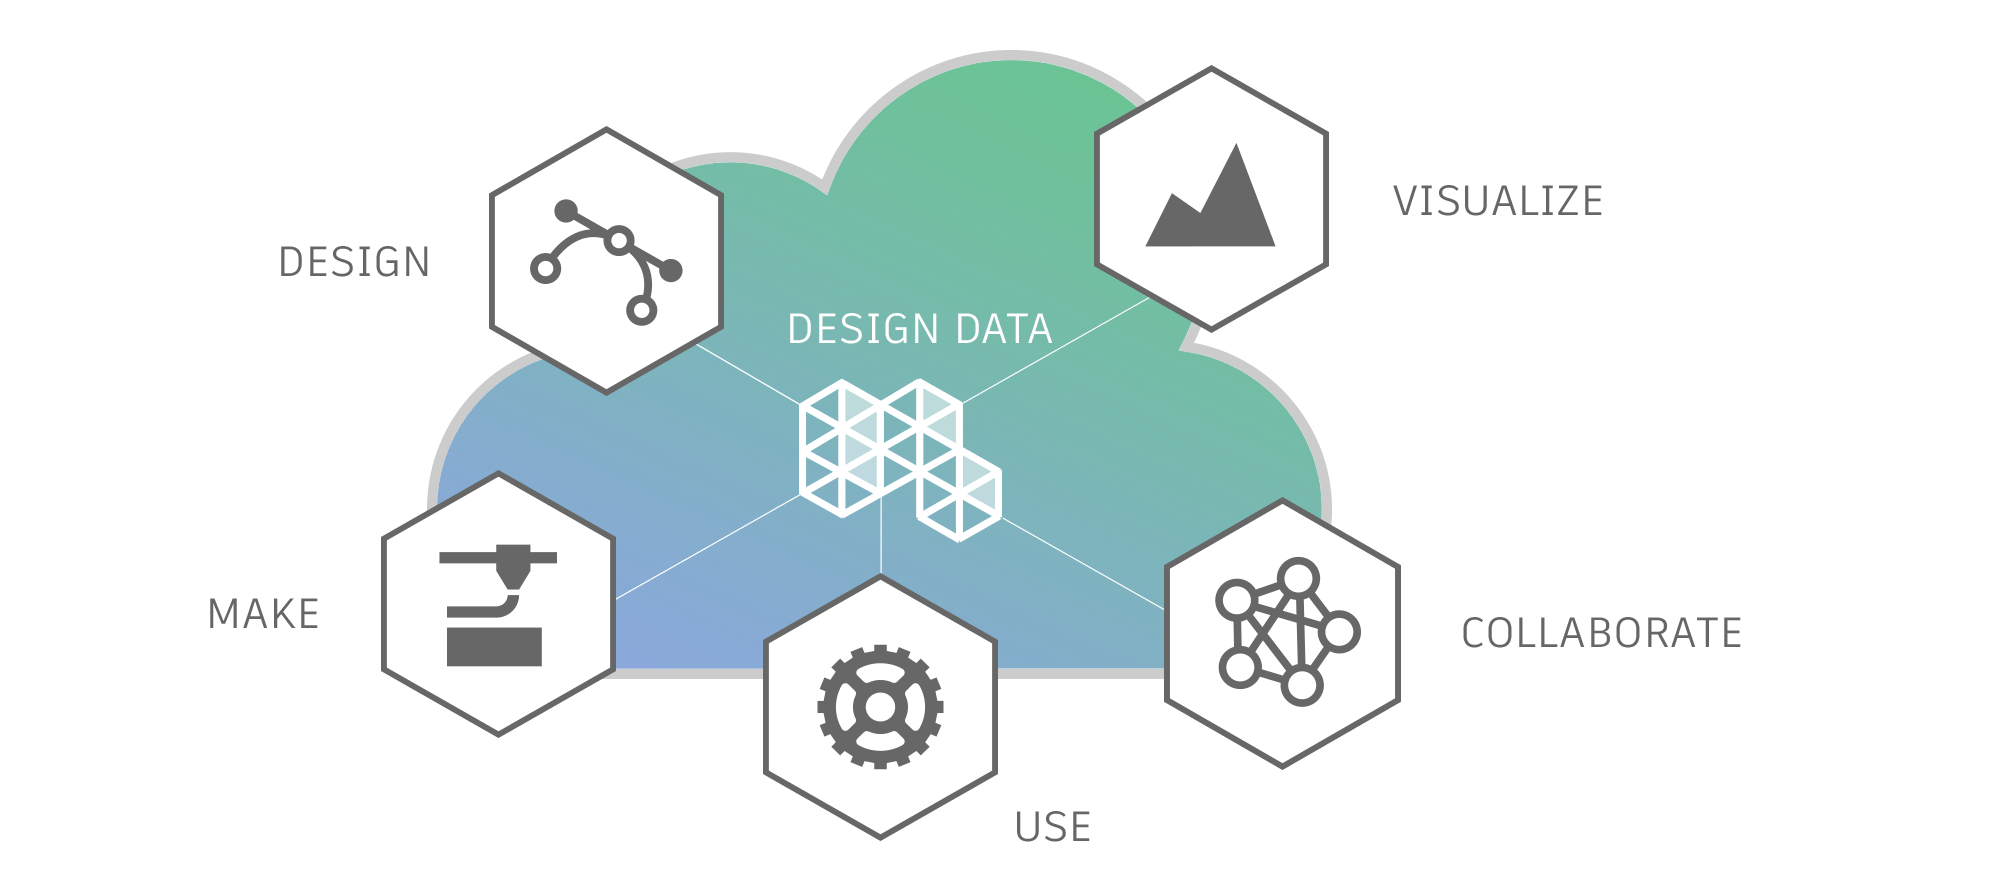 Autodesk forge cloud diagram with design, make, use, collaborate and visualize icons